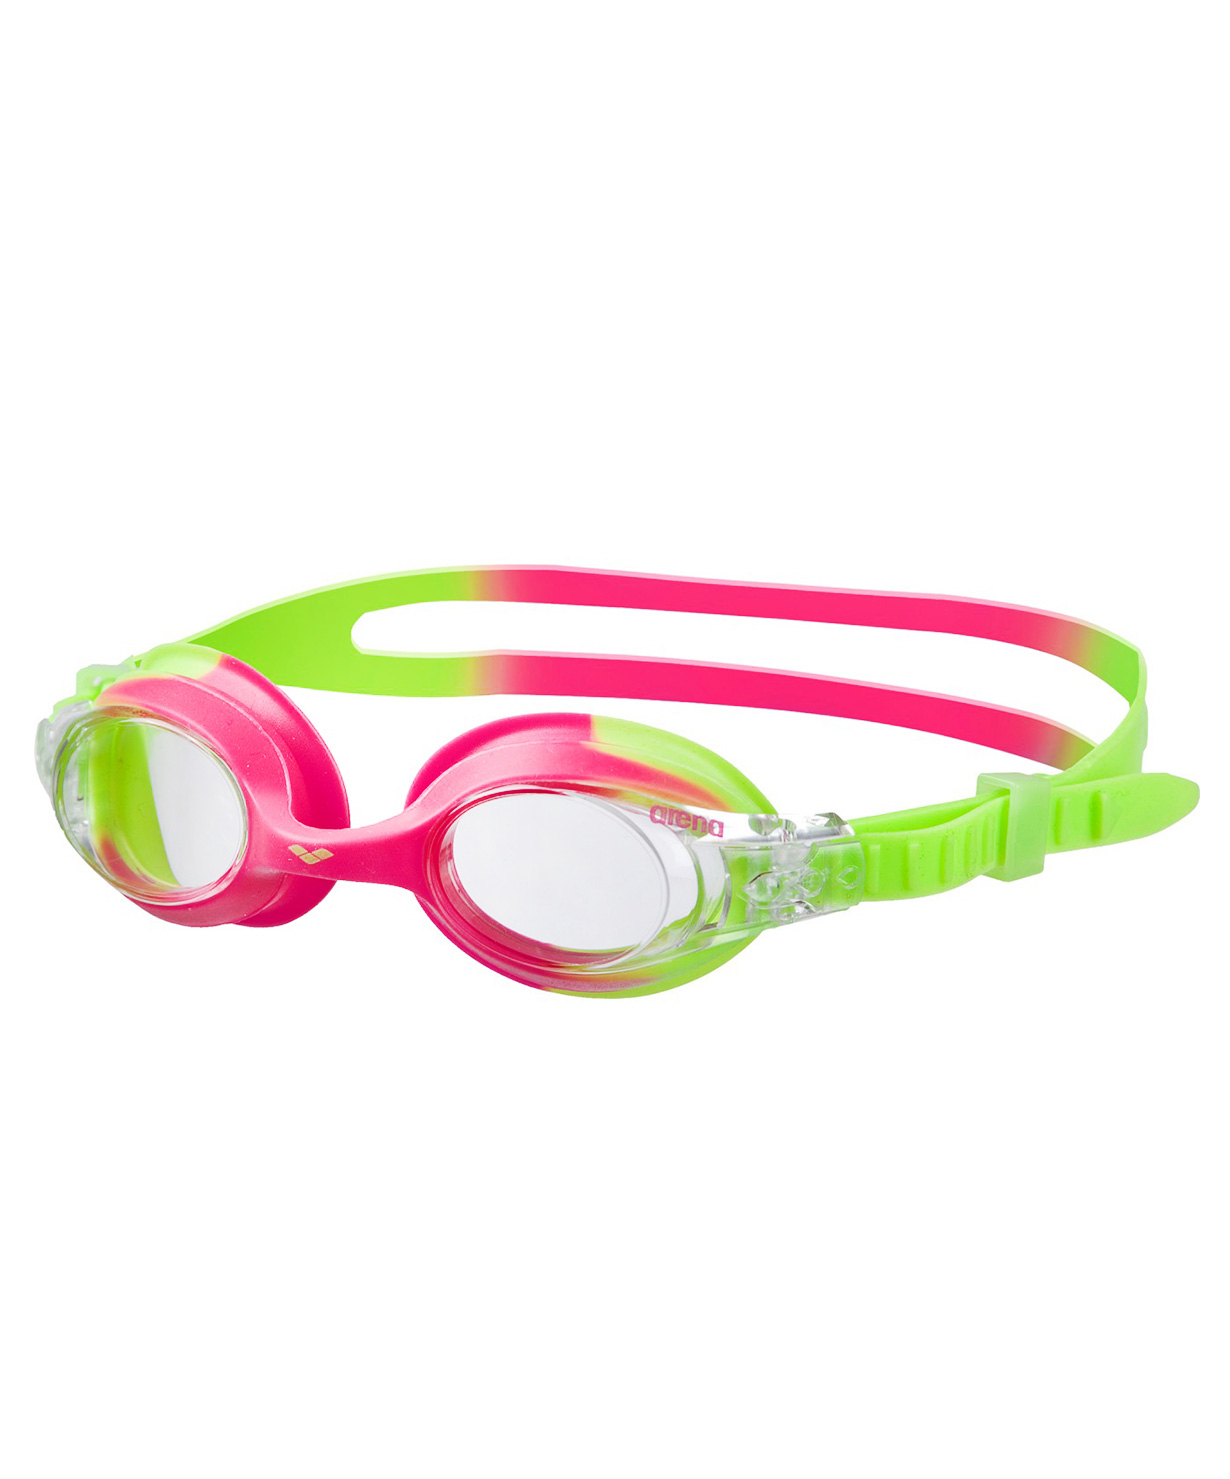 Очки X-Lite Kids Green Pink/Clear (92377 96)